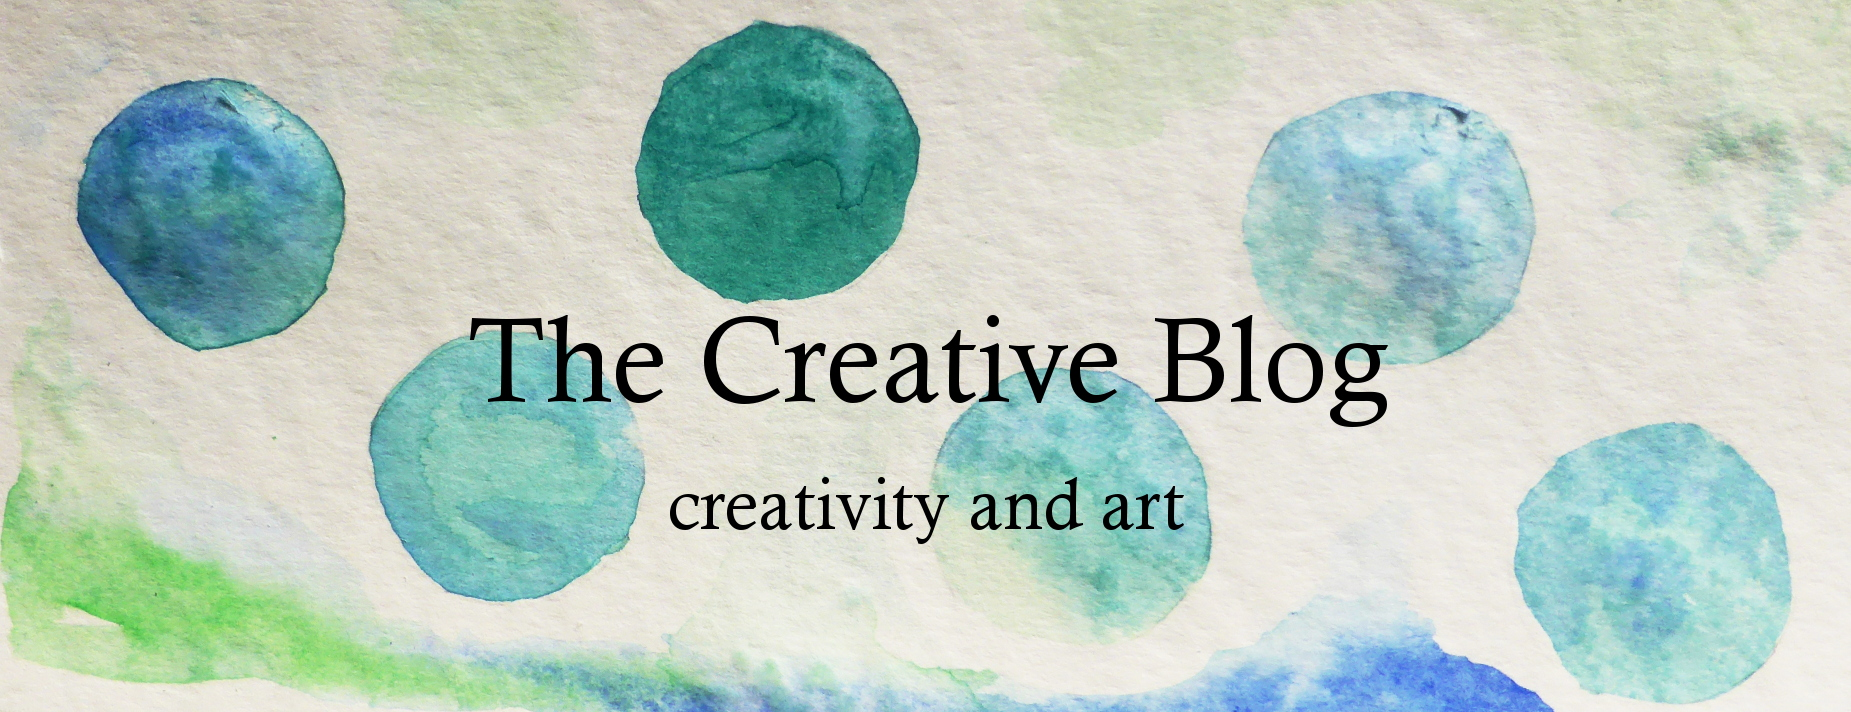 The Creative Blog